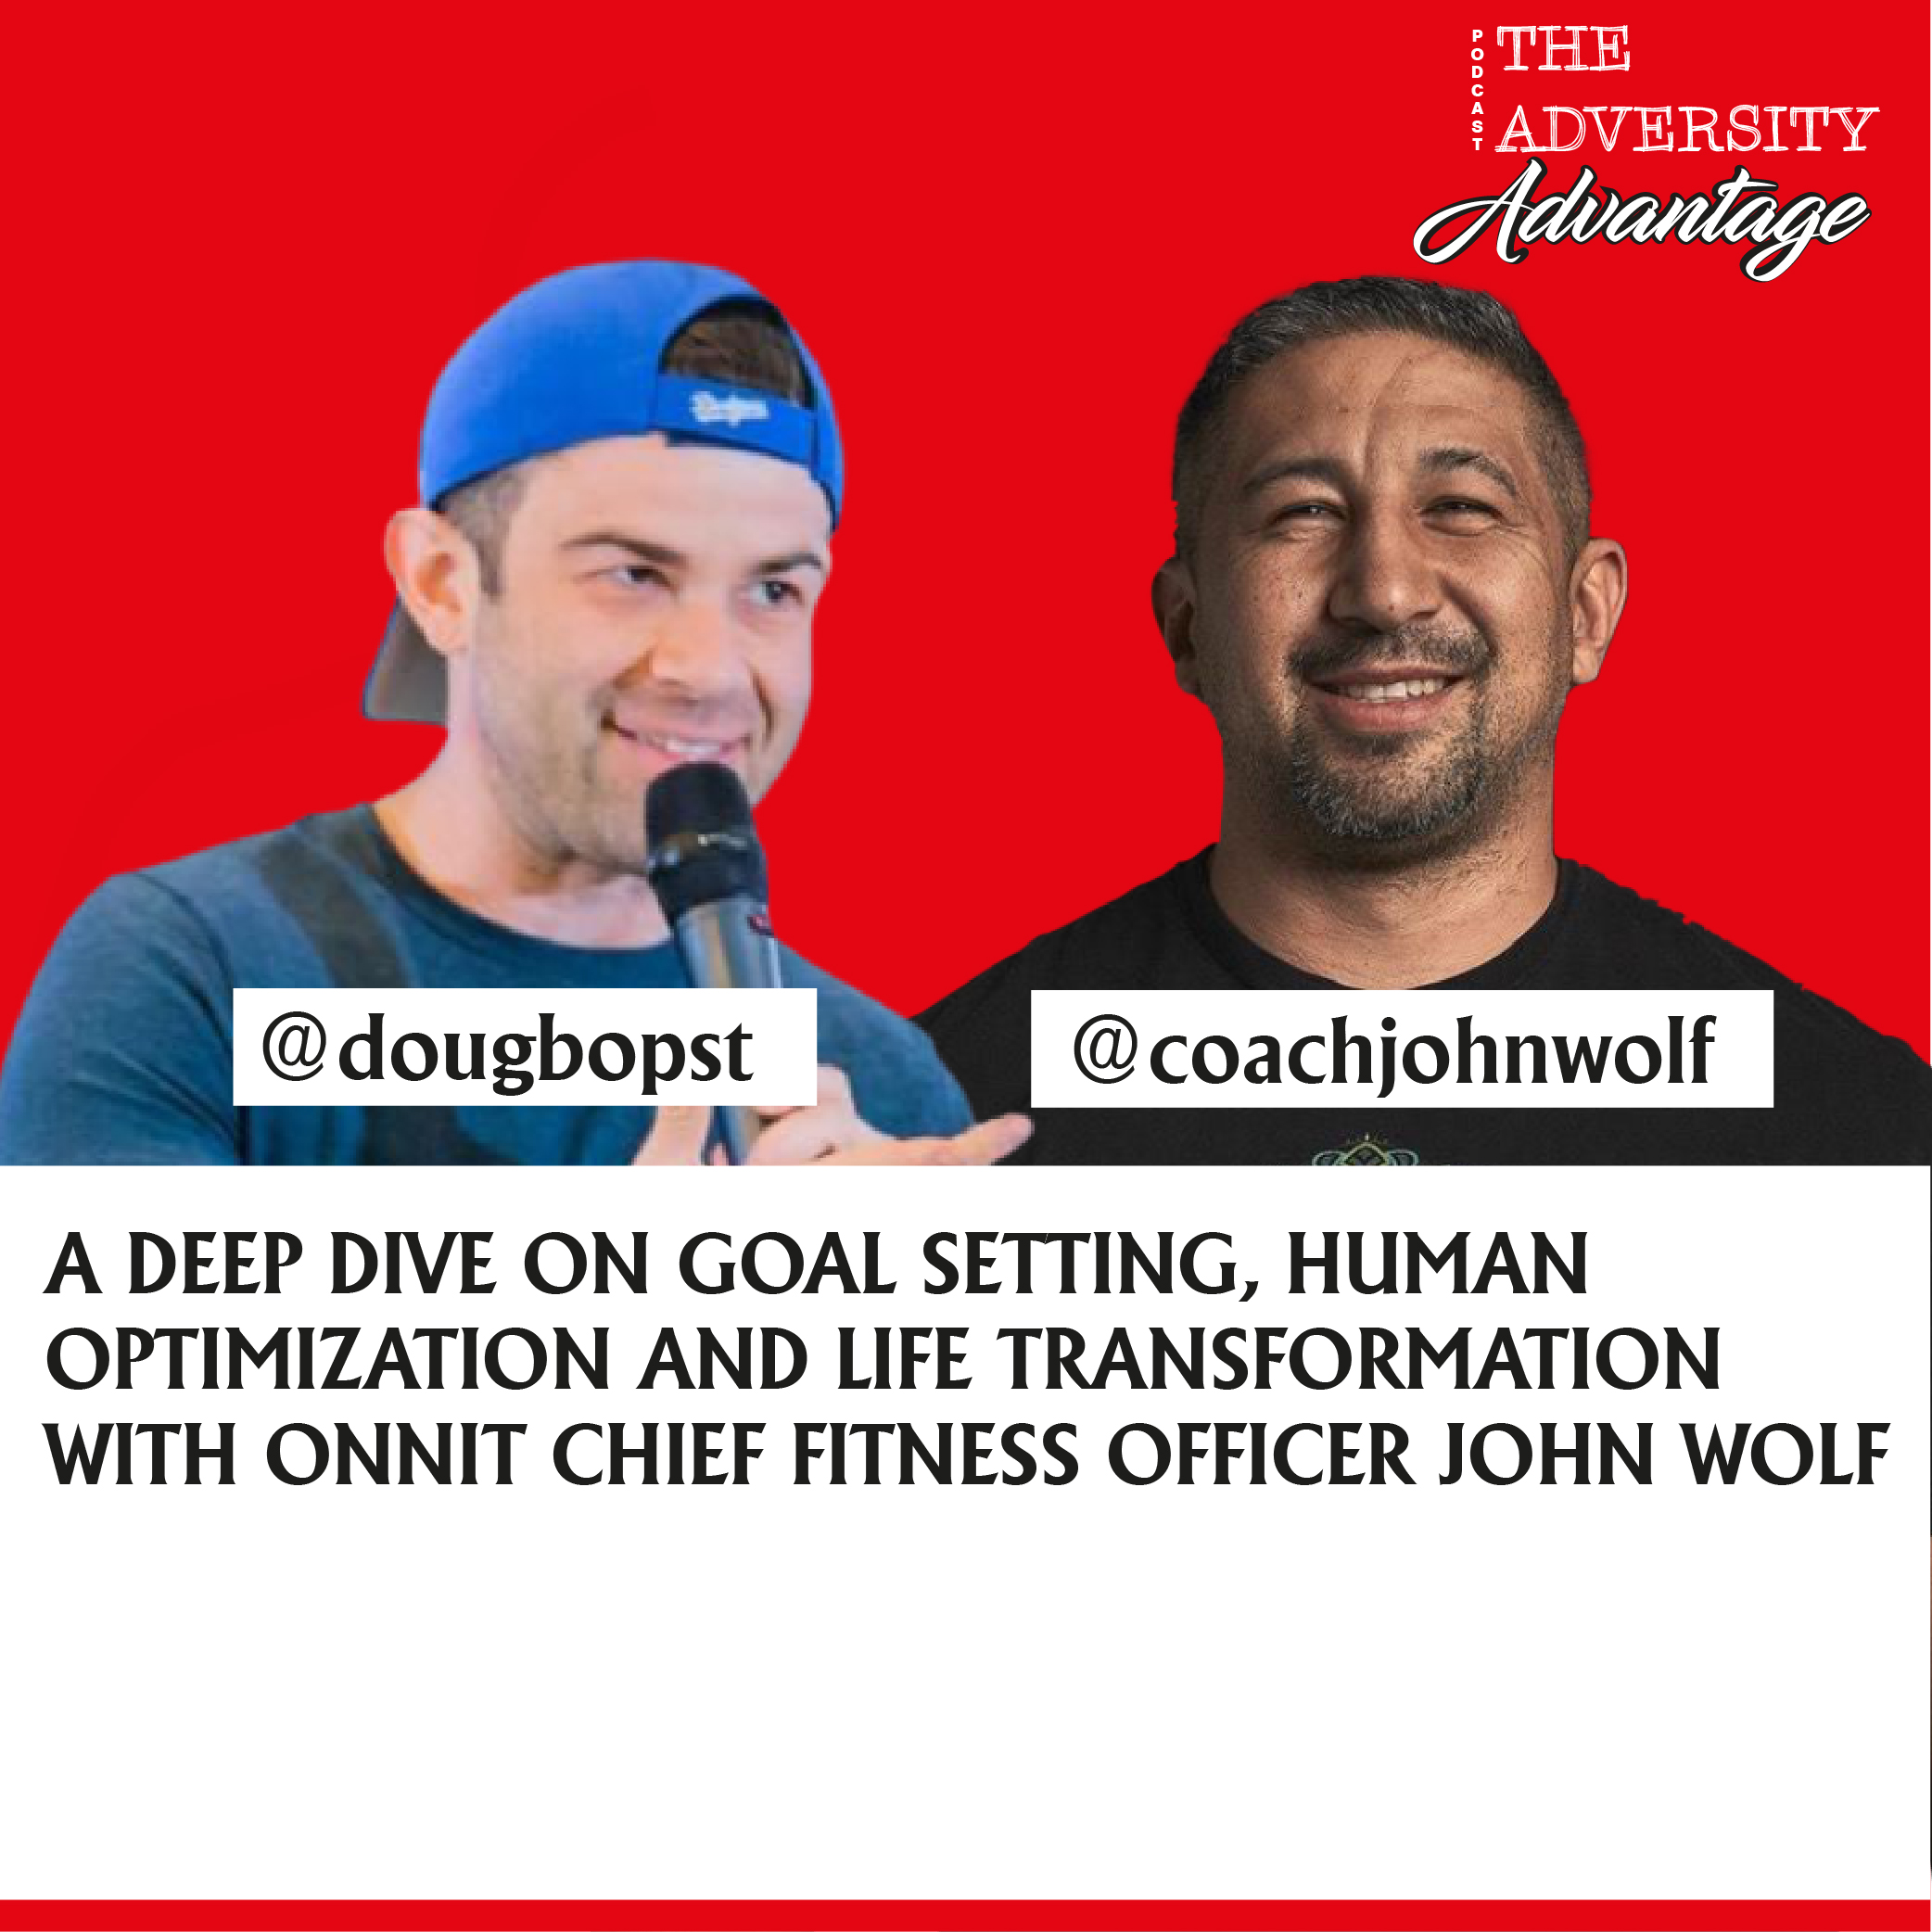 A Deep Dive on Goal Setting, Human Optimization and Life Transformation w/ Onnit Chief Fitness Officer John Wolf